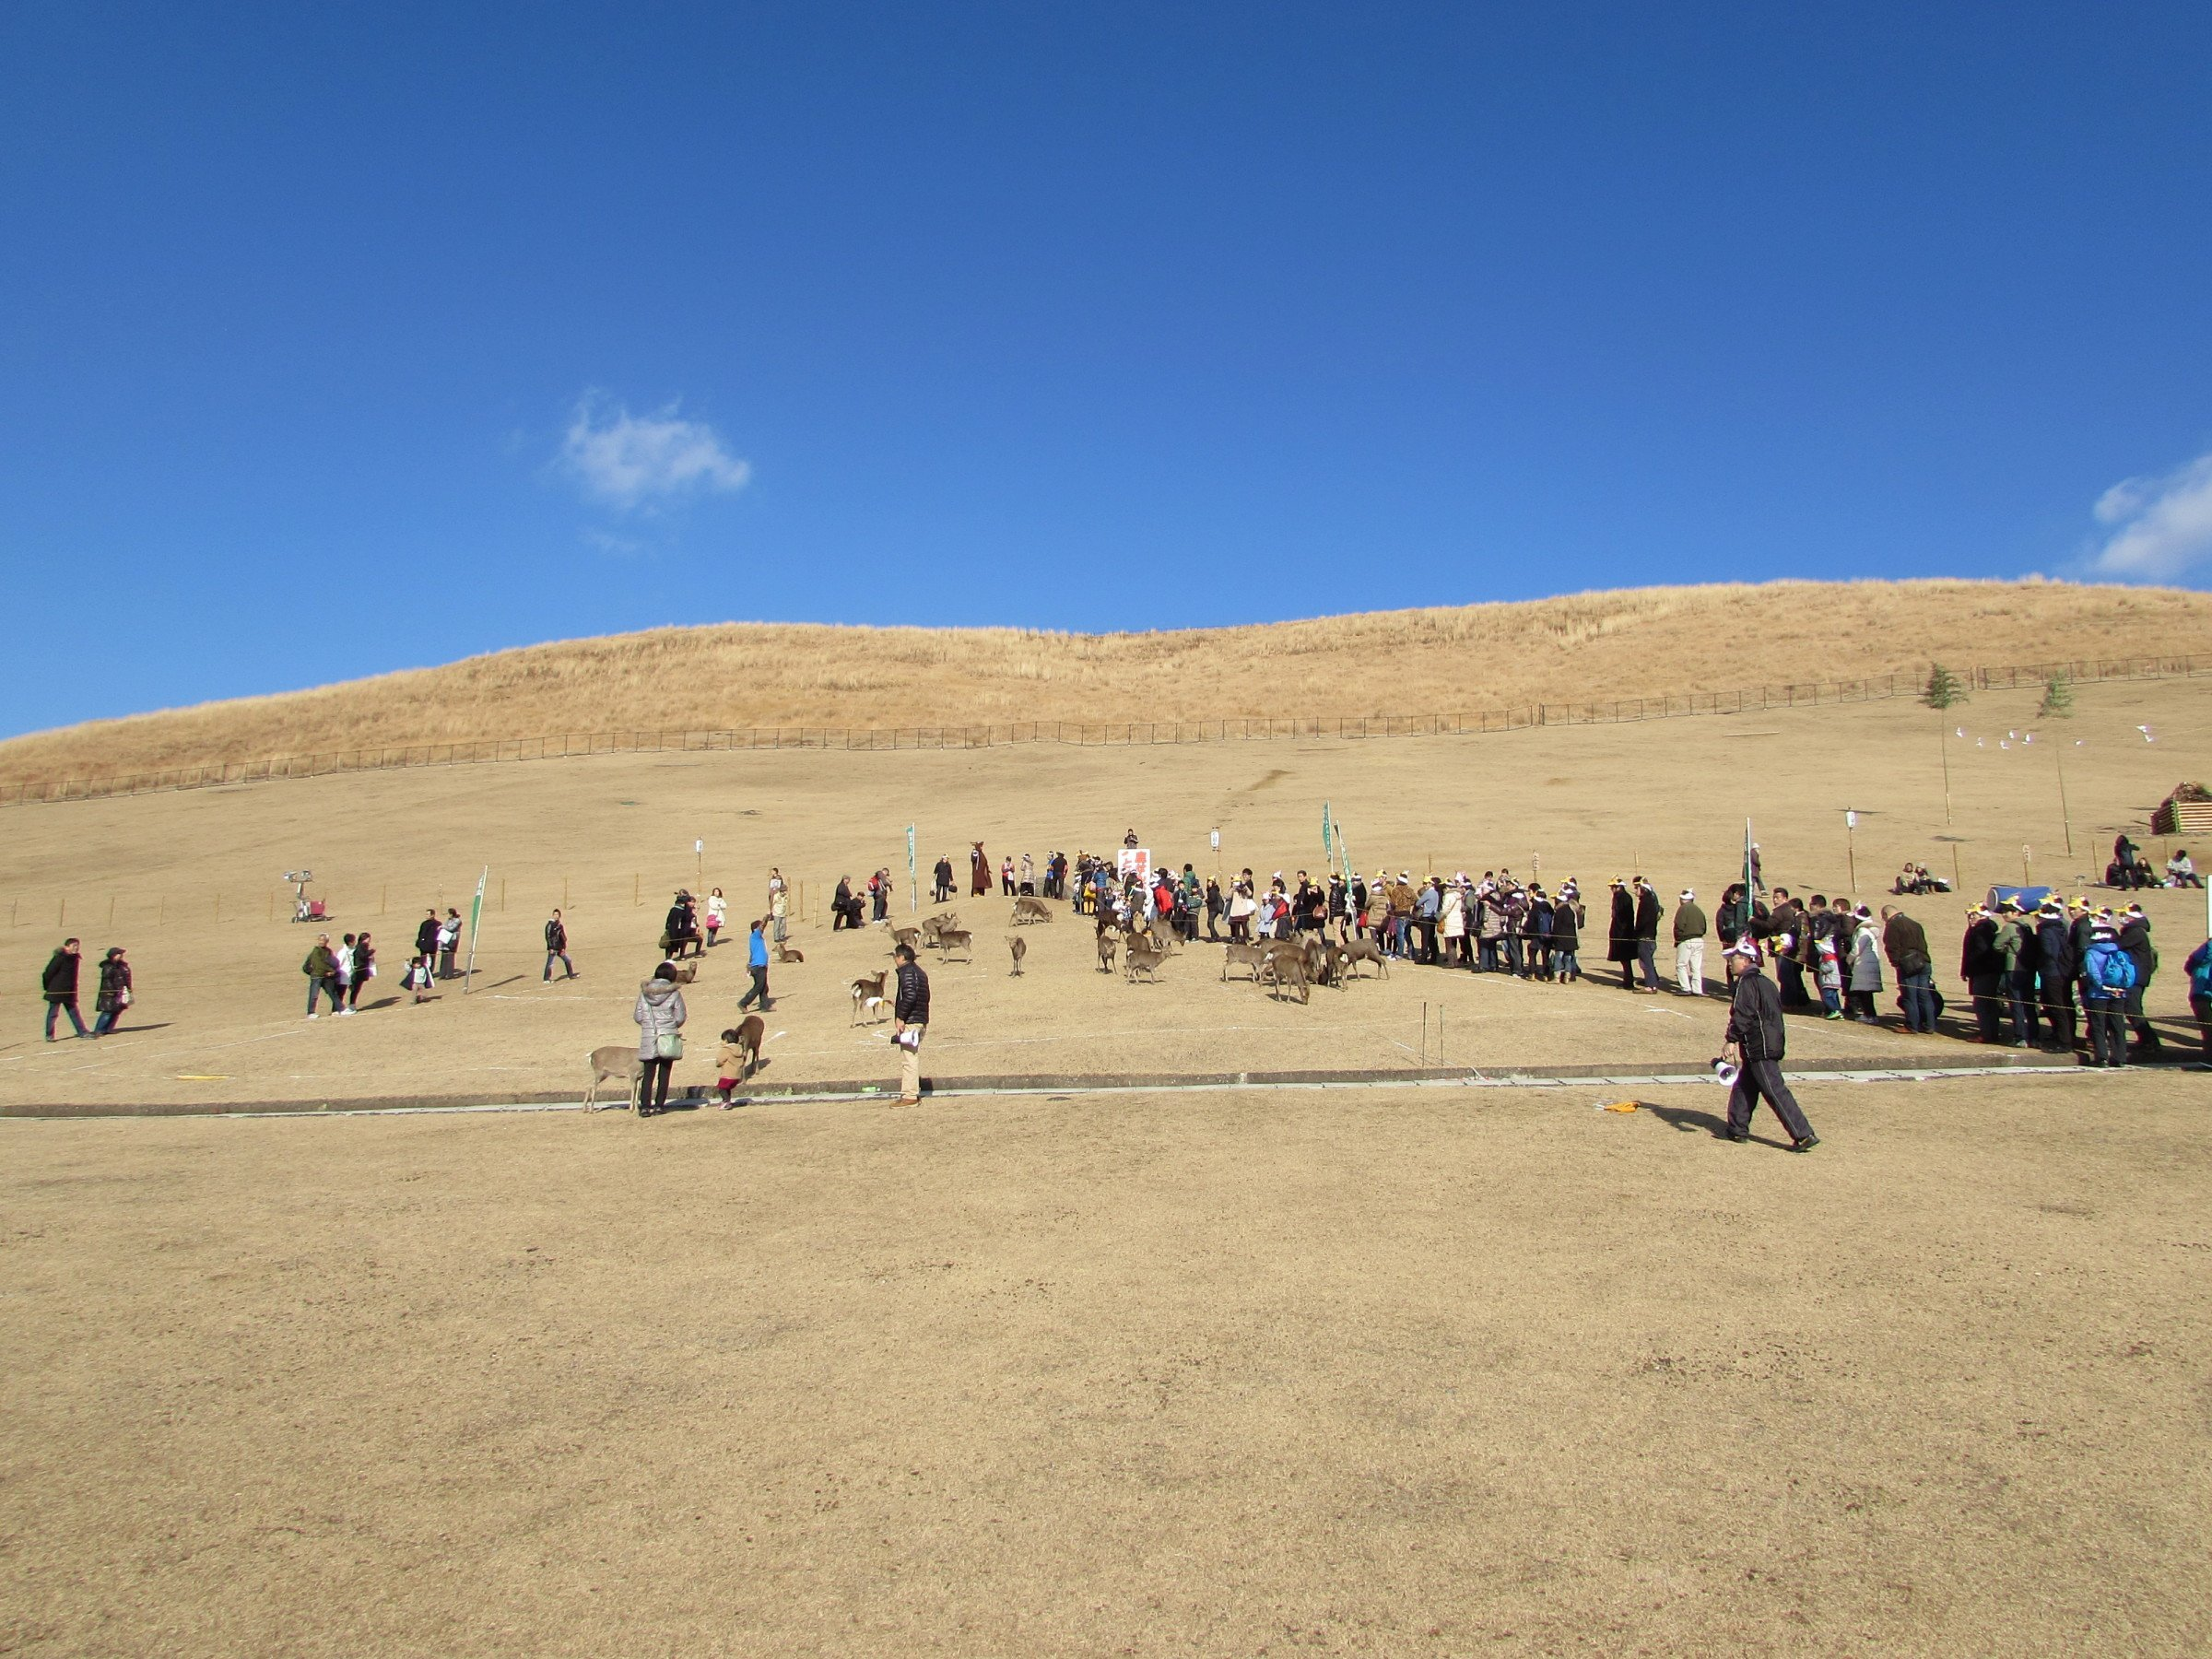 After taking in some of Nara's year-round attractions. I headed over to Mt. Wakakusa (more of a very large hill, really!) to watch one of the festivals rather unique events...